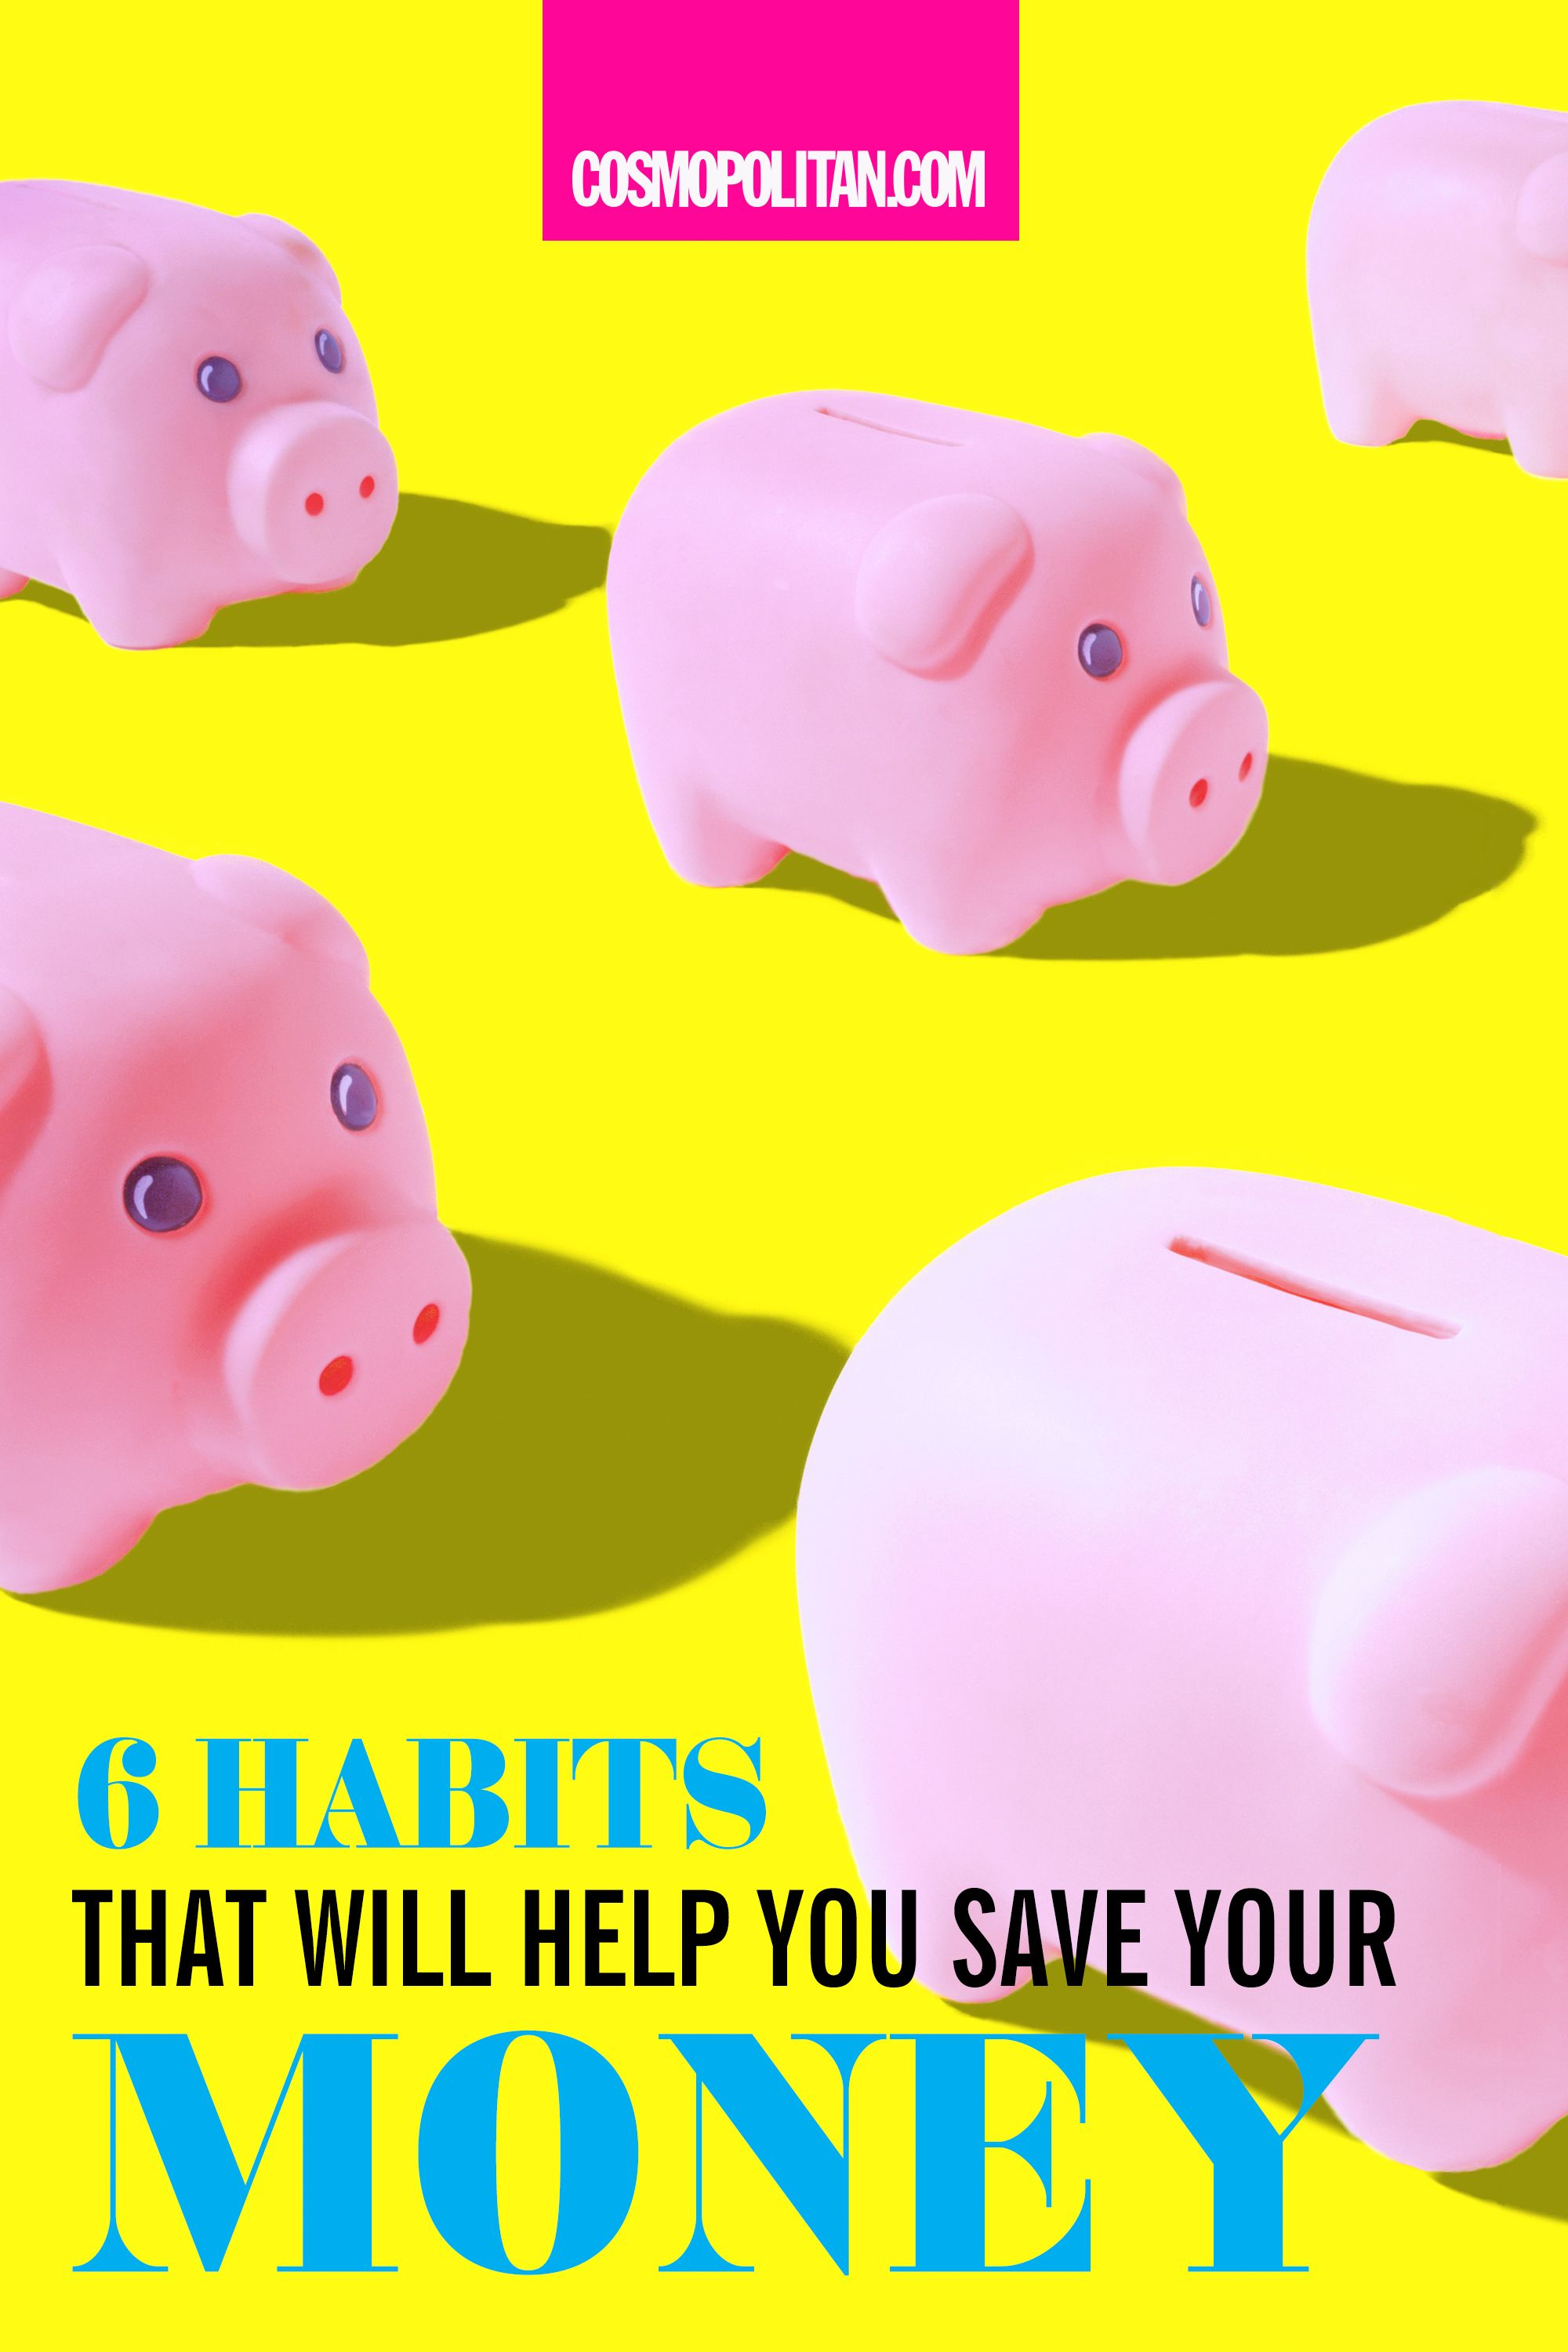 6 Habits That Will Help You Save Your Money